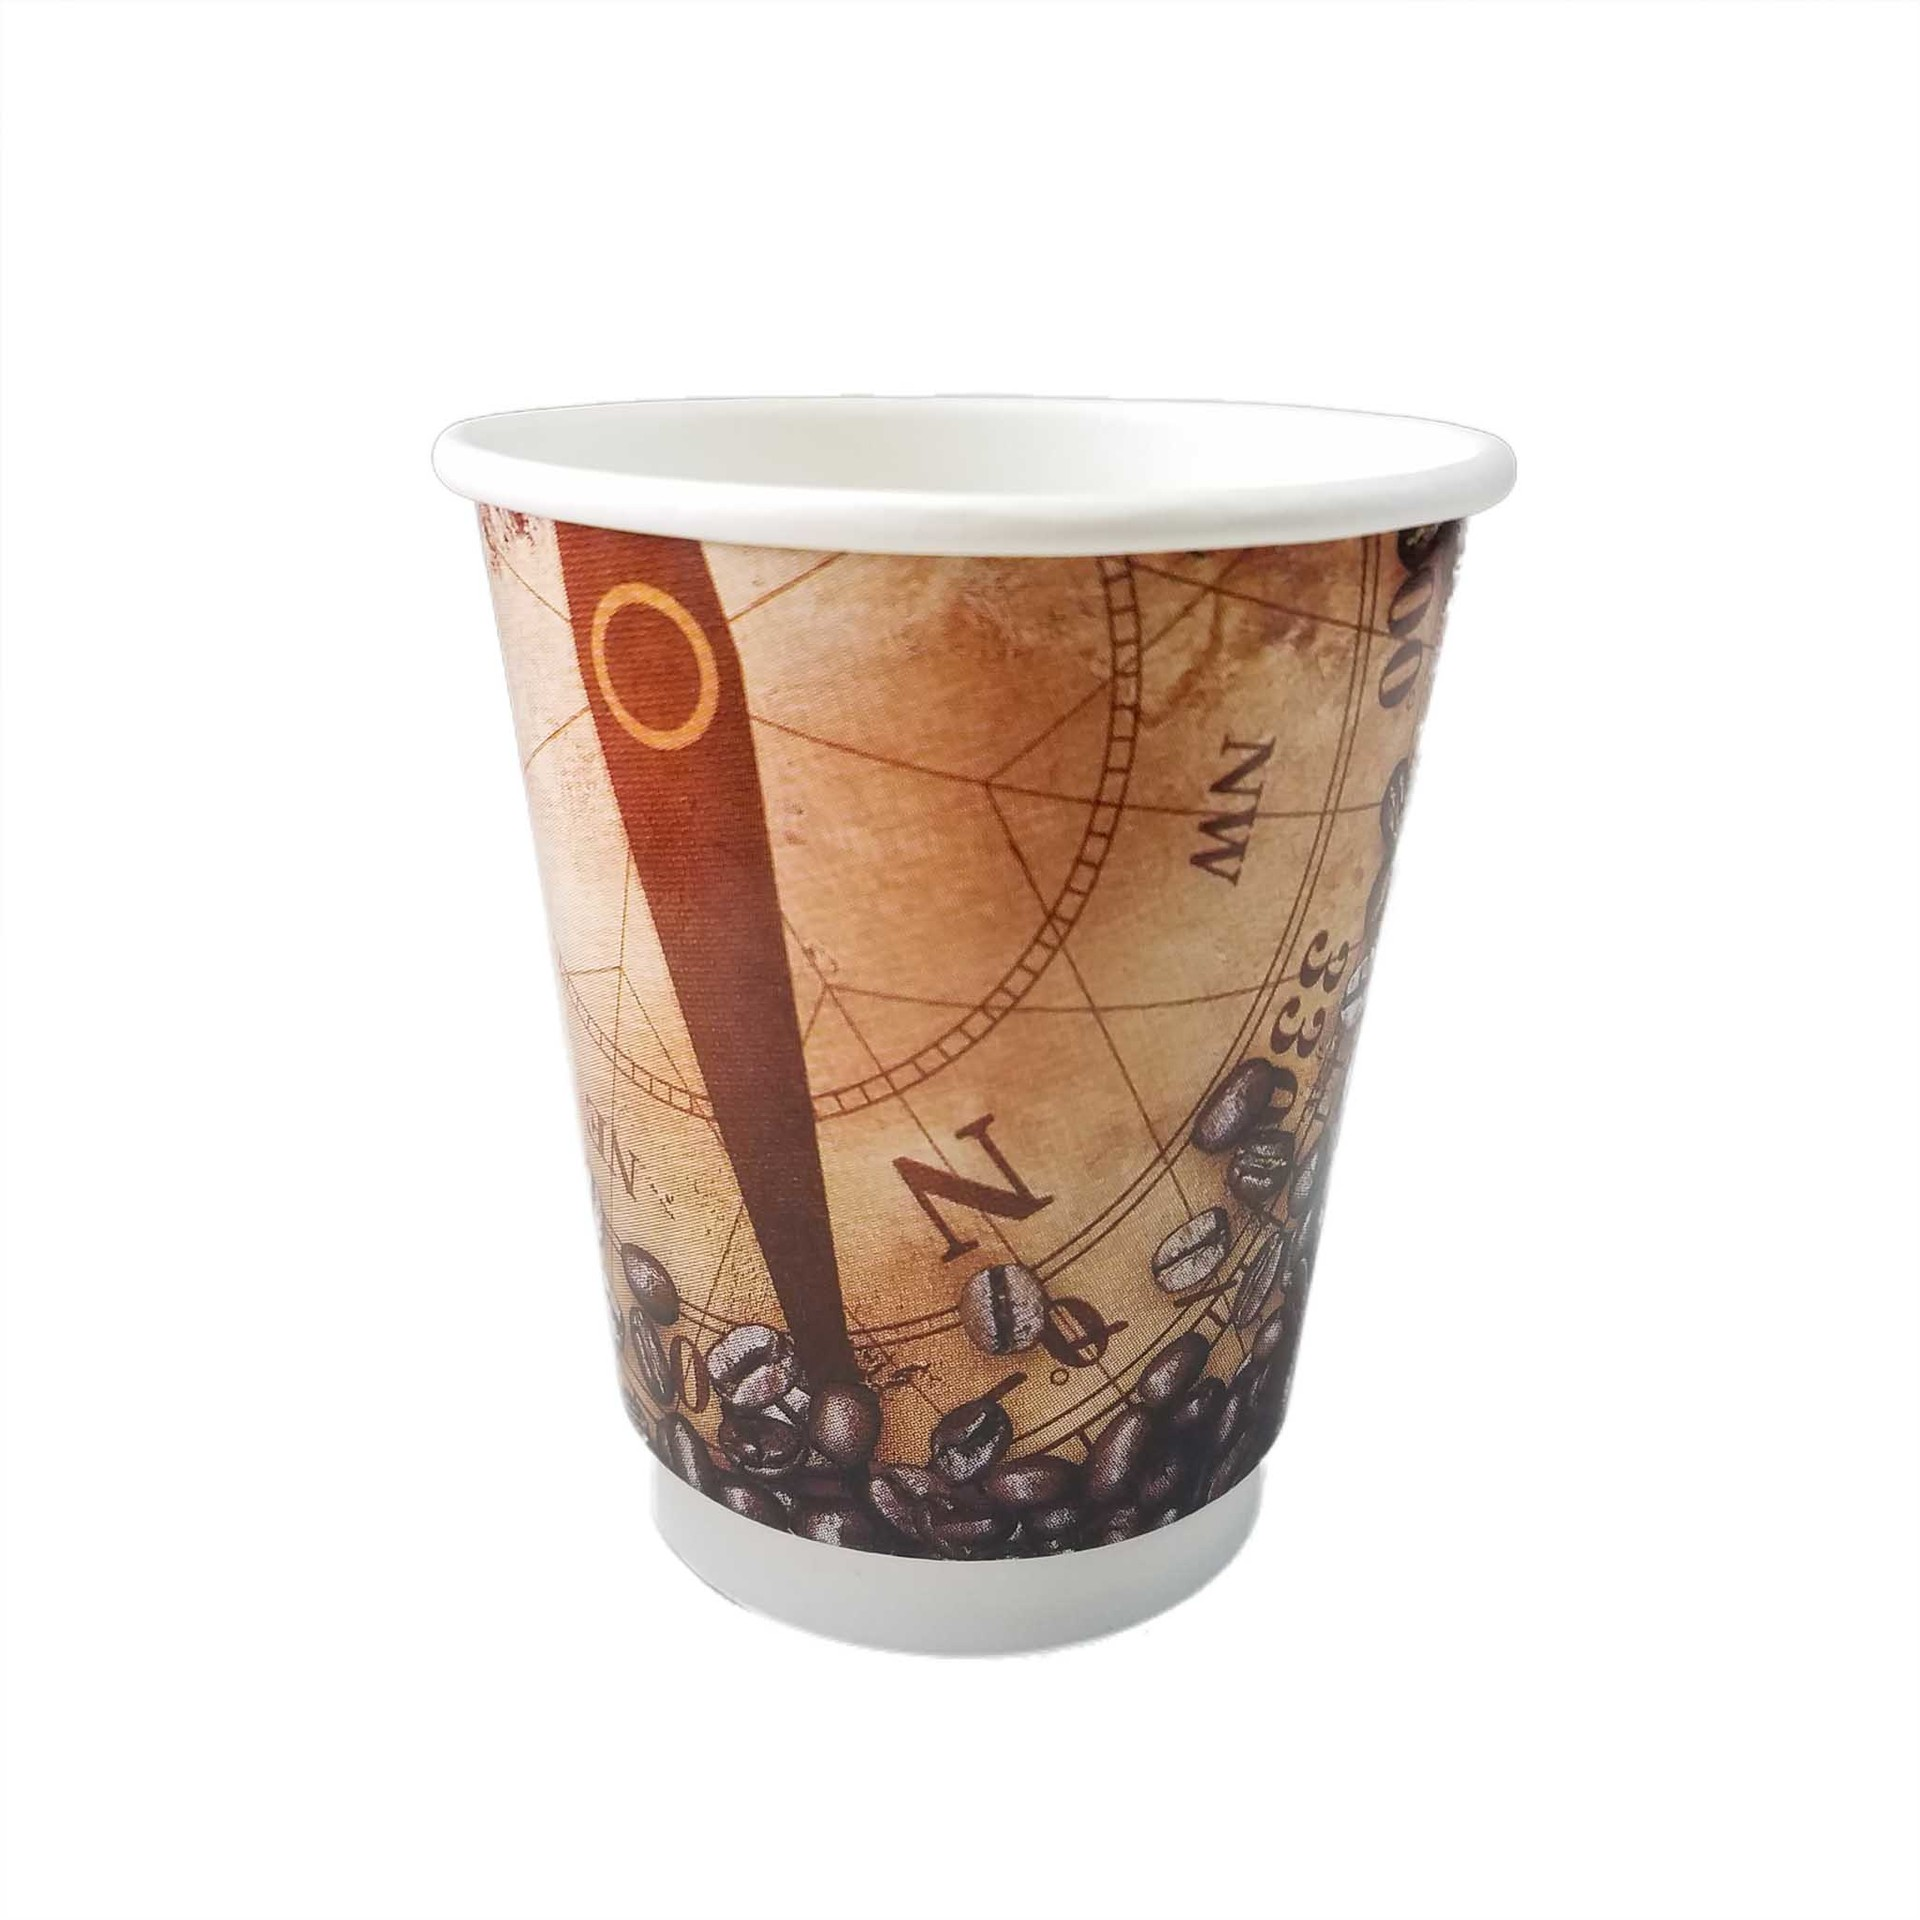 HENGDA Disposable Tableware Custom Double Wall Paper Coffee Cup for Hot Drinks Disposable Paper Cup image4